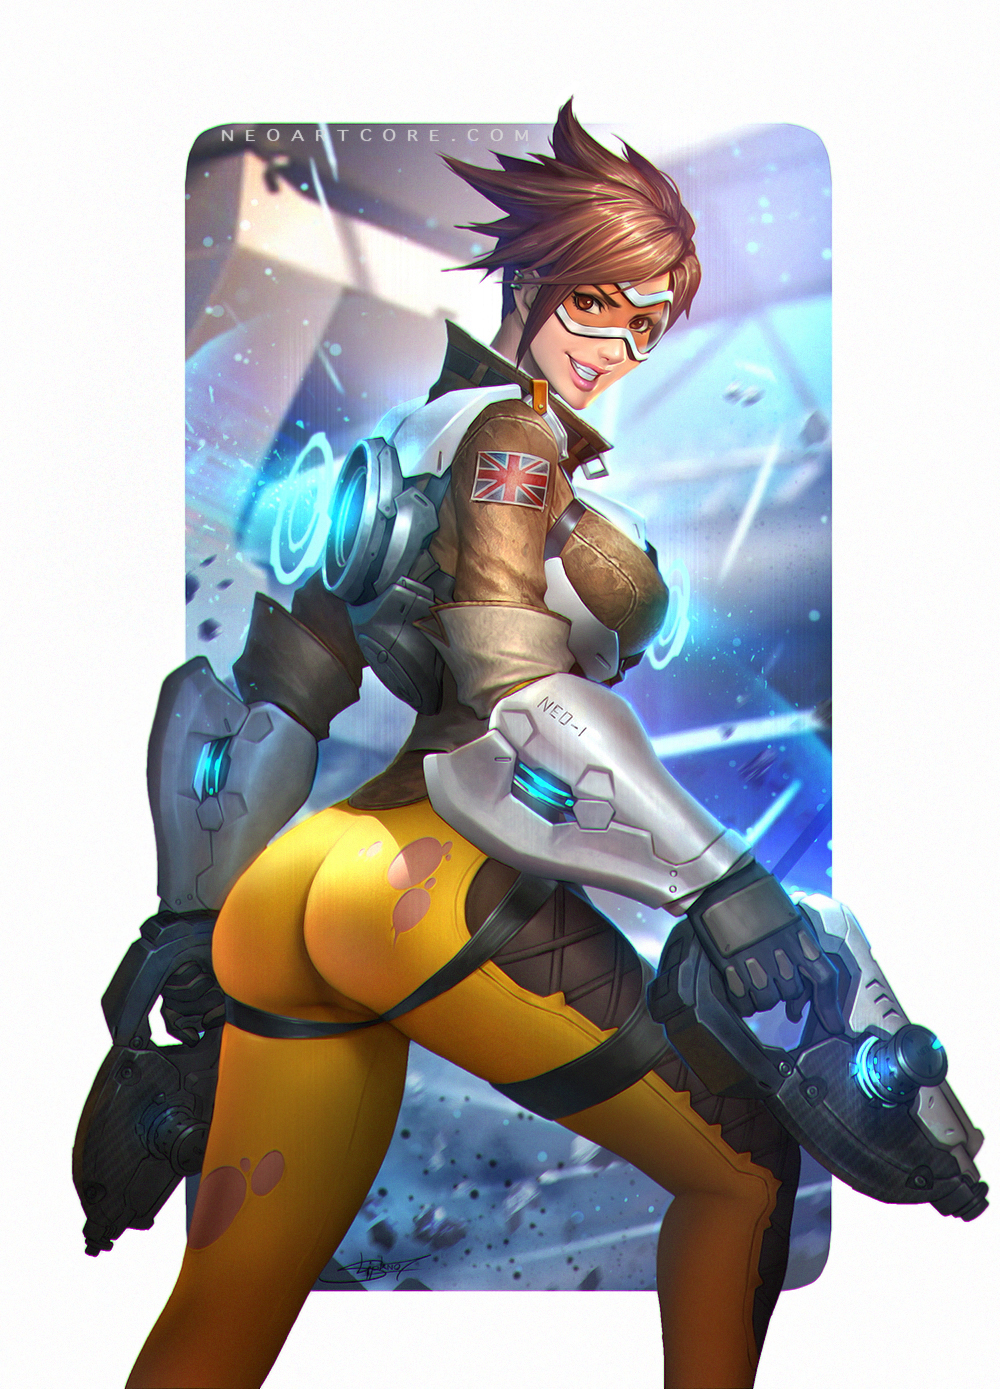 tracer_final_by_neoartcore-d86wf9b